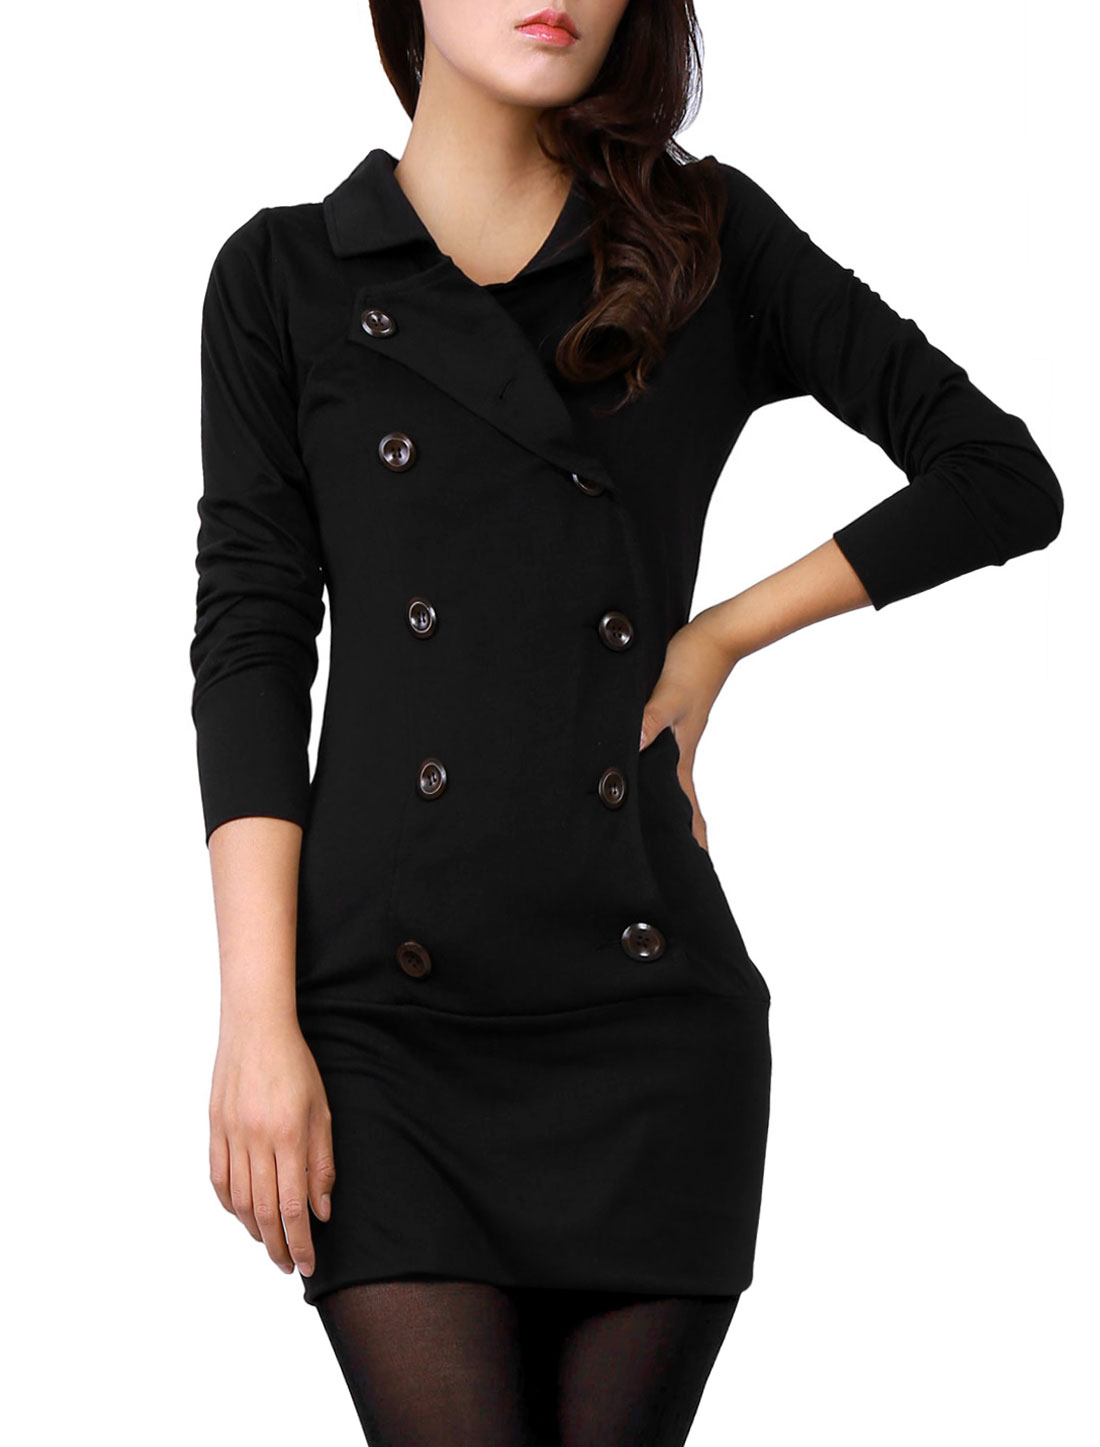 Woman Long Sleeve Convertible Collar Buttoned Dress Black Size XS